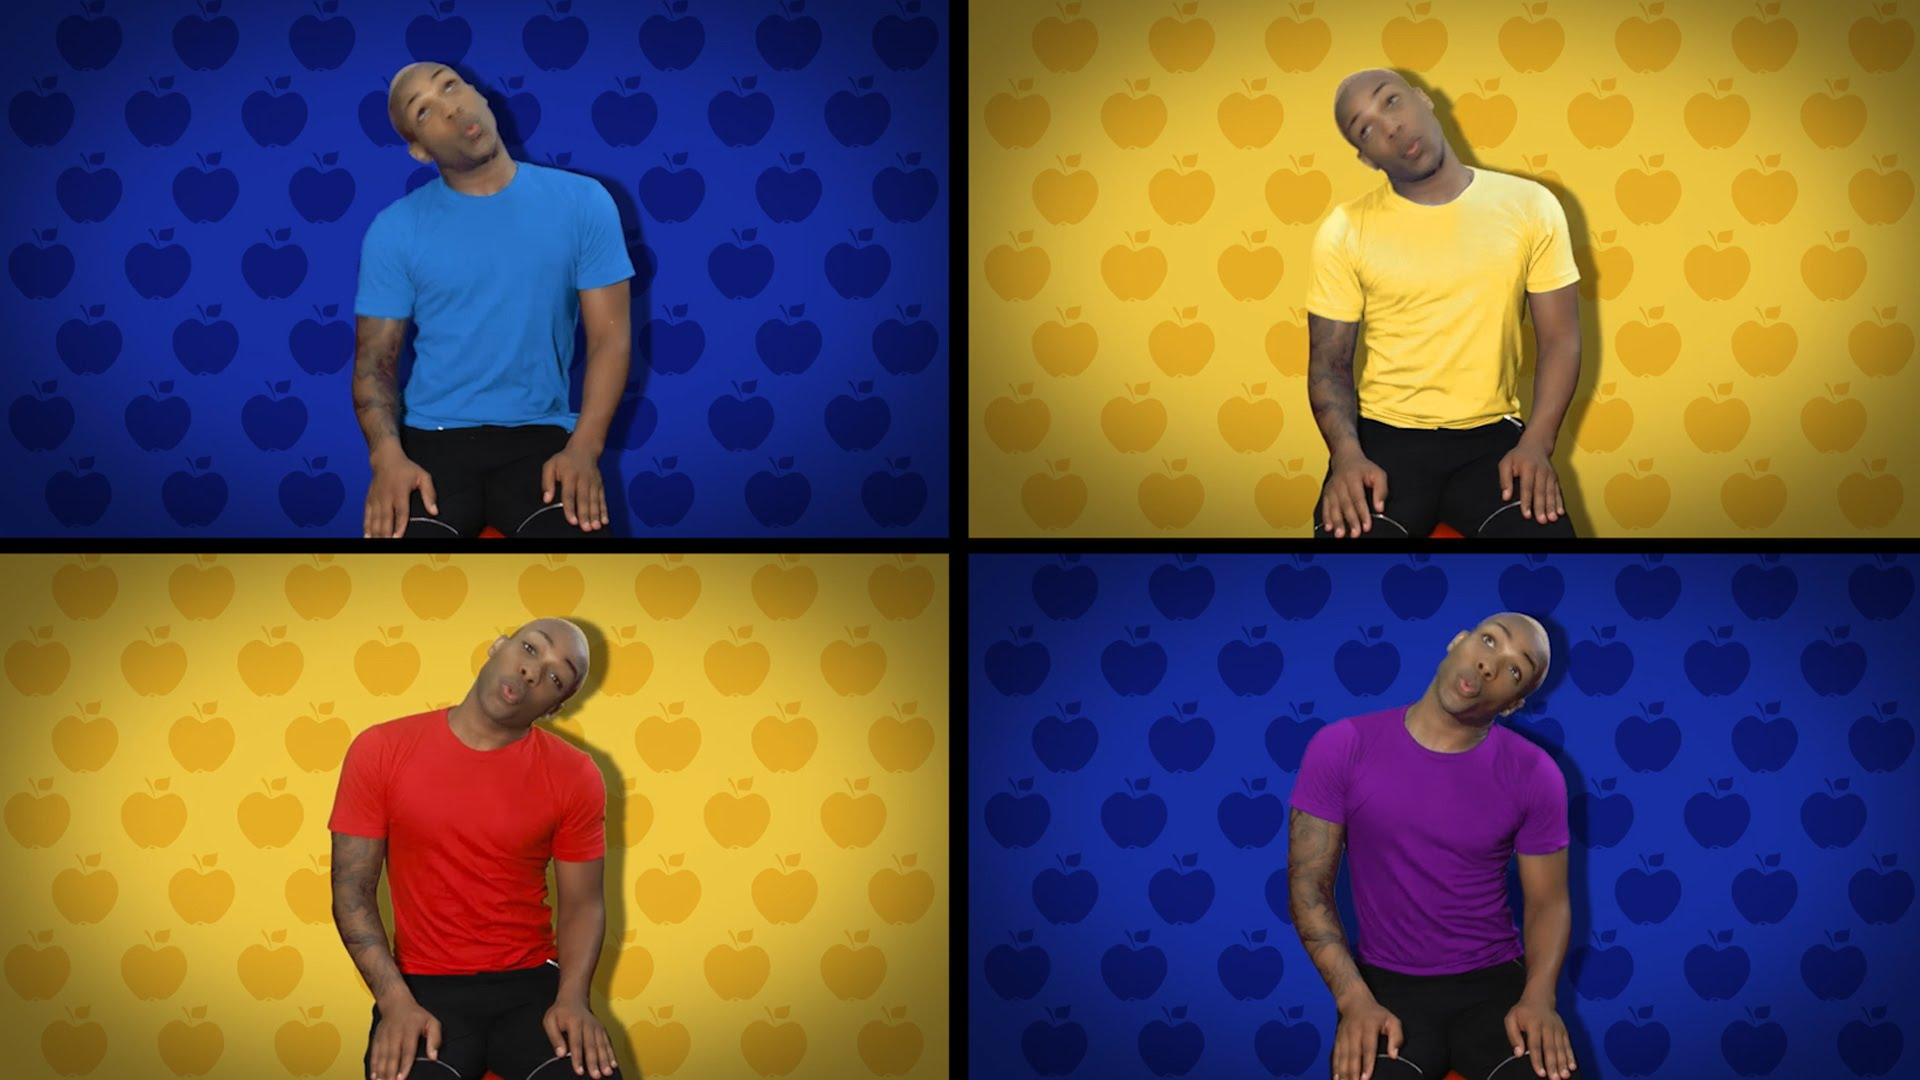 The Evolution of Disney, A Chronological Medley of Songs in Disney Films by Vocalist Todrick Hall